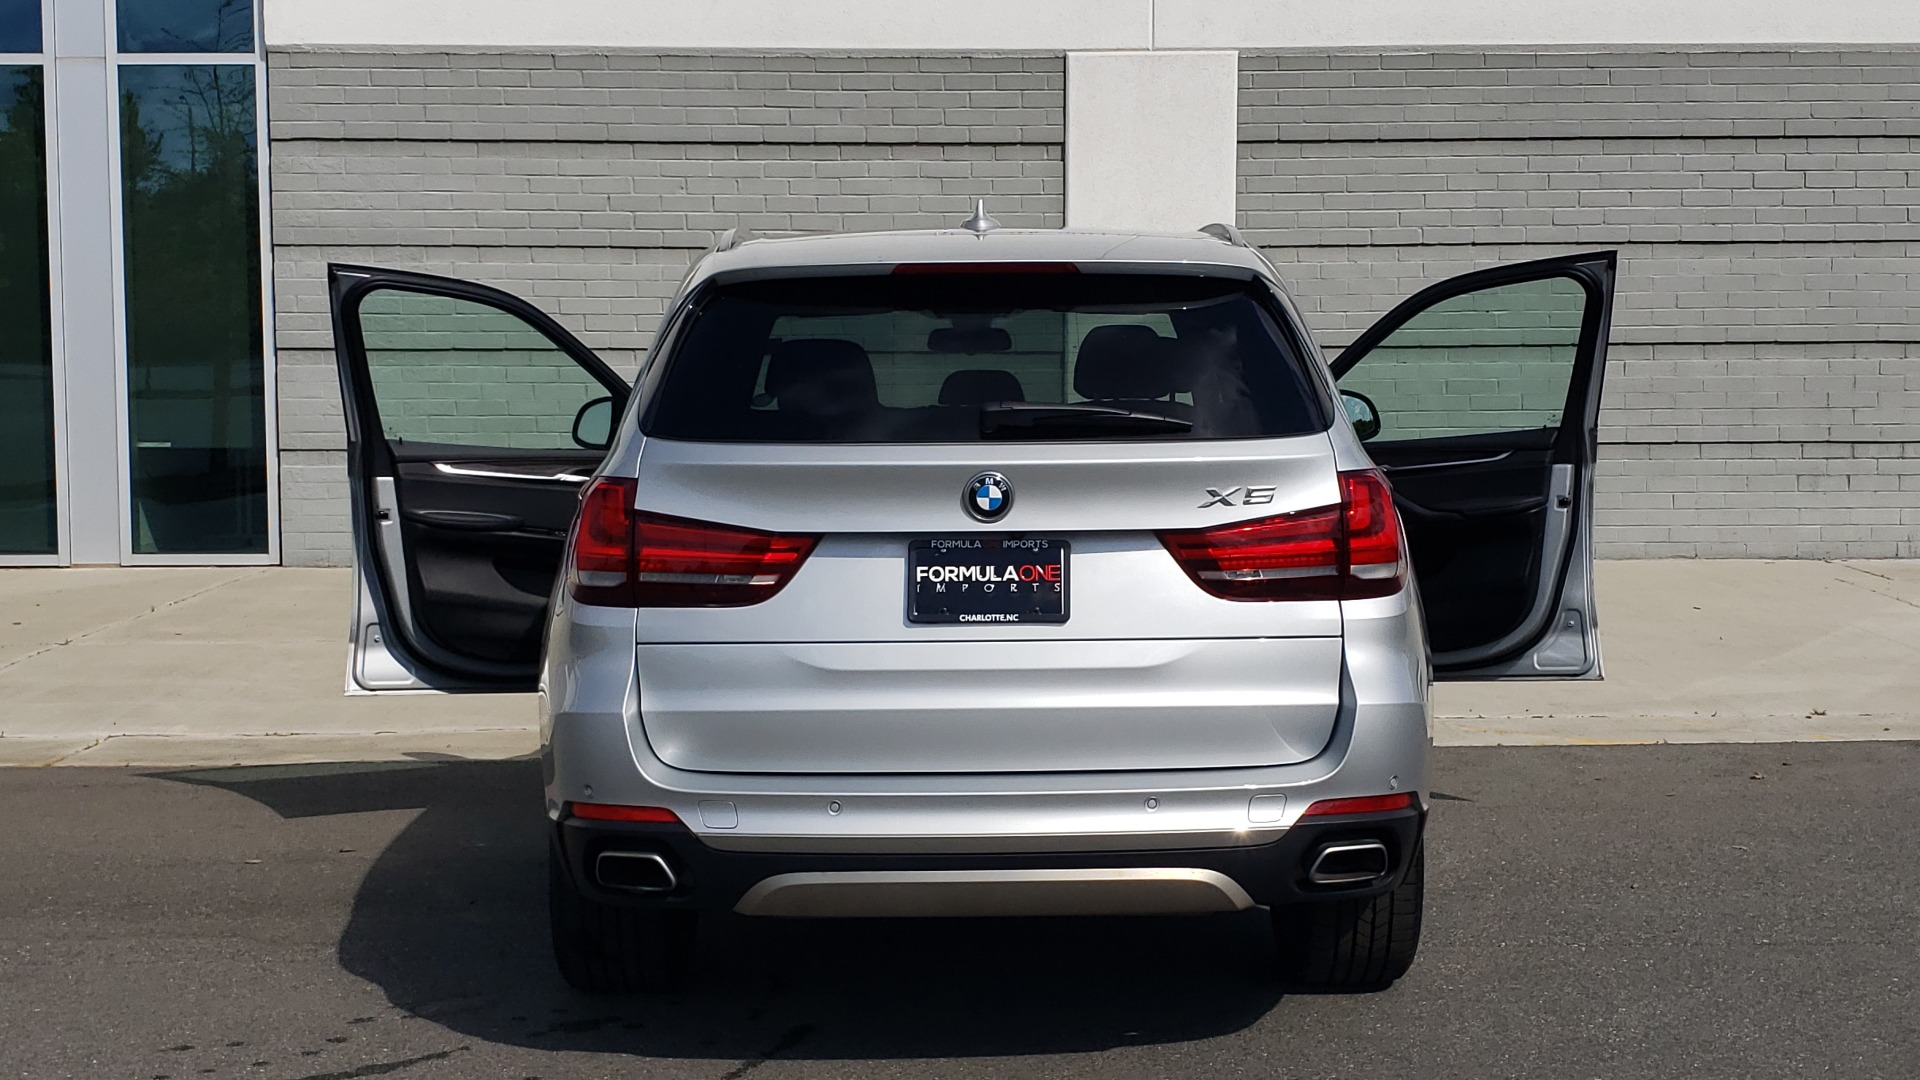 Used 2018 BMW X5 XDRIVE35I PREMIUM / NAV / PANO-ROOF / DRIVER ASST / REARVIEW for sale Sold at Formula Imports in Charlotte NC 28227 31